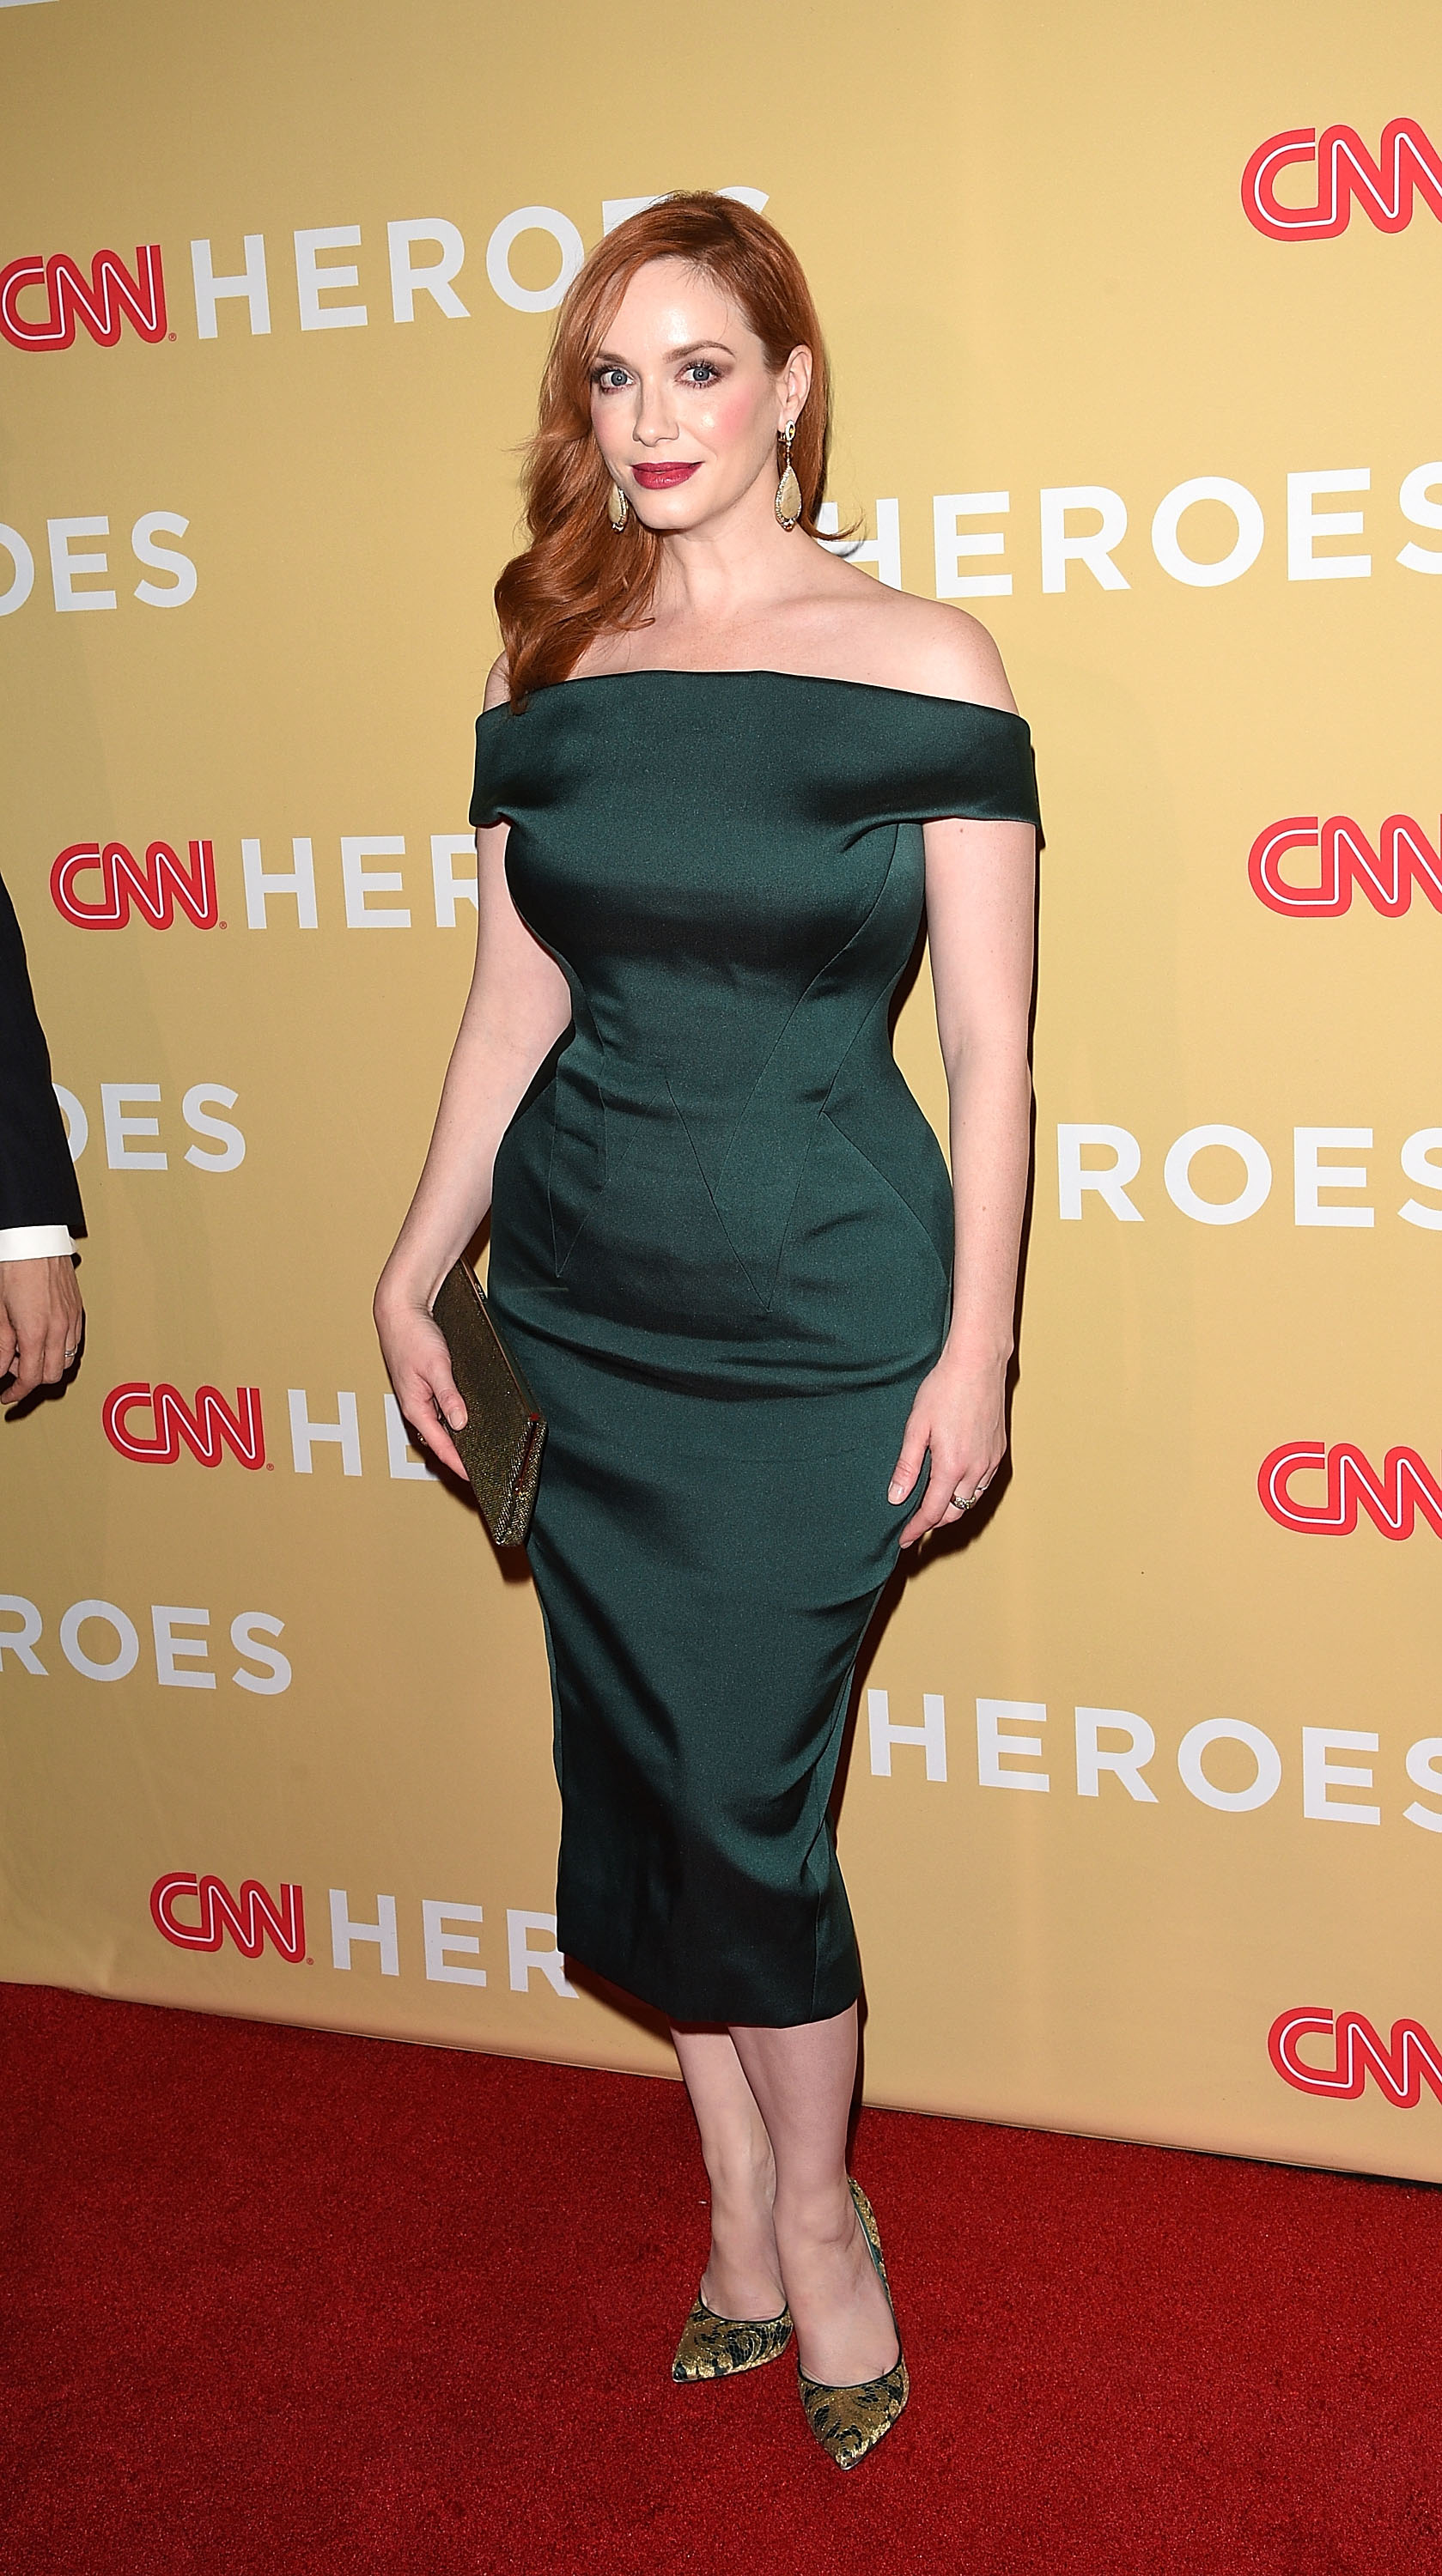 NEW YORK, NY - NOVEMBER 18: Actress Christina Hendricks attends the 2014 CNN Heroes: An All-Star Tribute at the American Museum of Natural History on November 18, 2014 in New York City. (Photo by Andrew H. Walker/Getty Images)